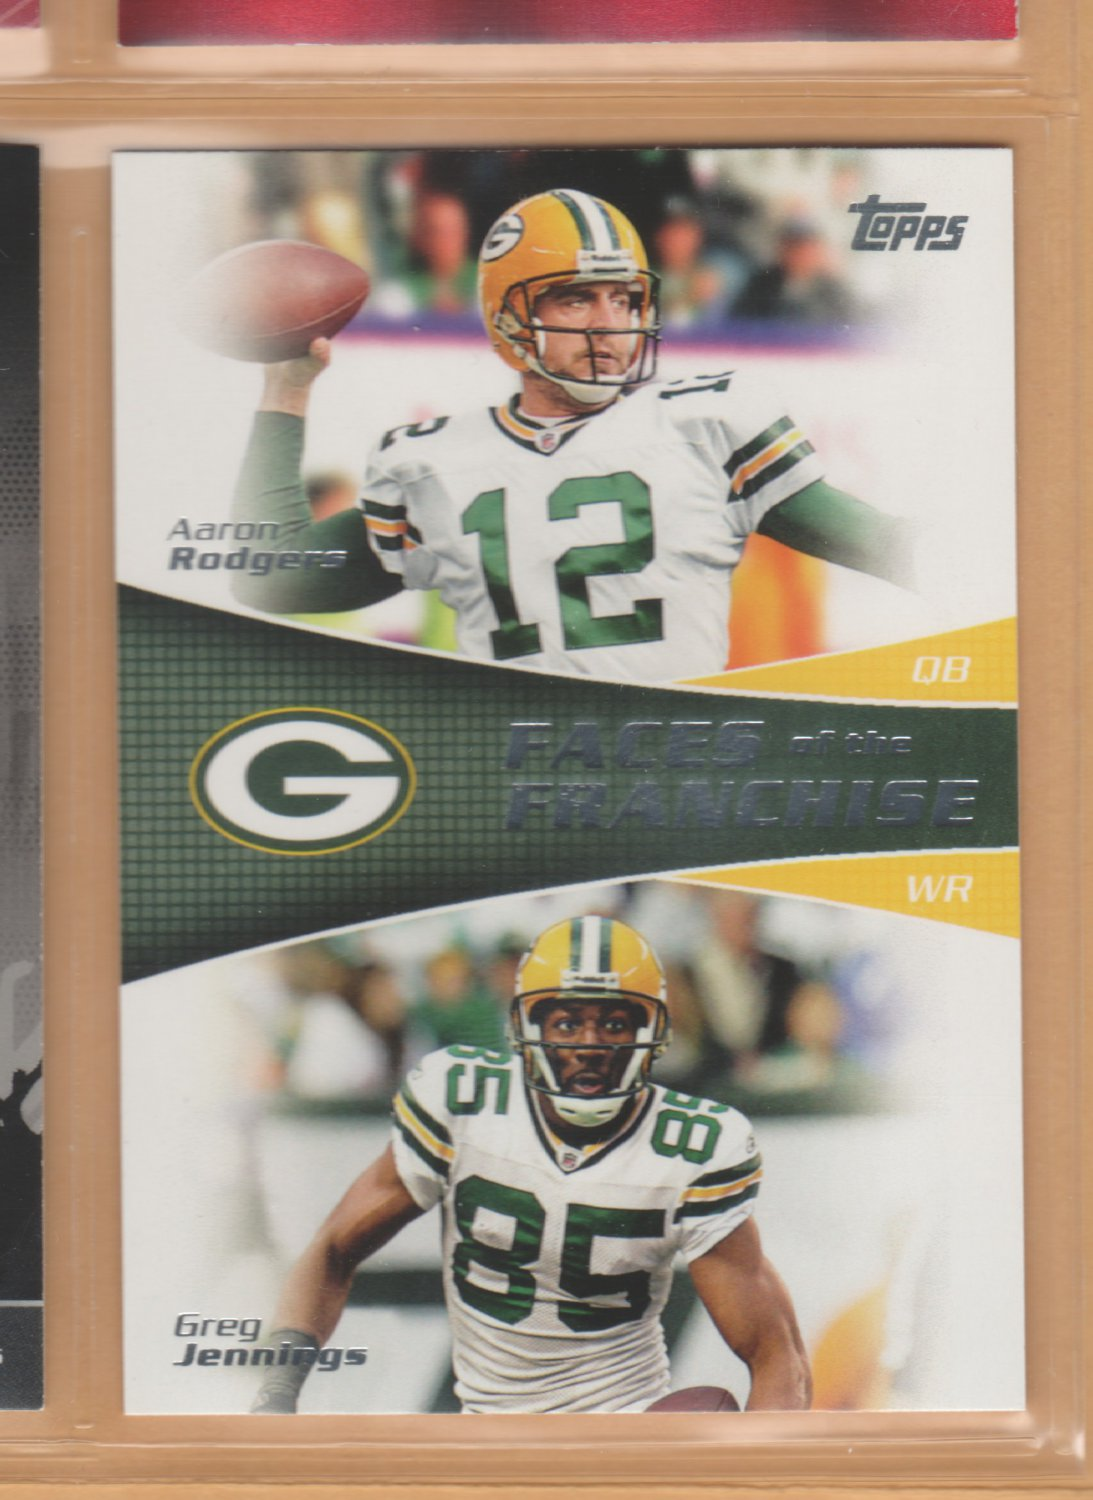 2011 Topps Faces of the Franchise Aaron Rodgers Greg Jennings Packers